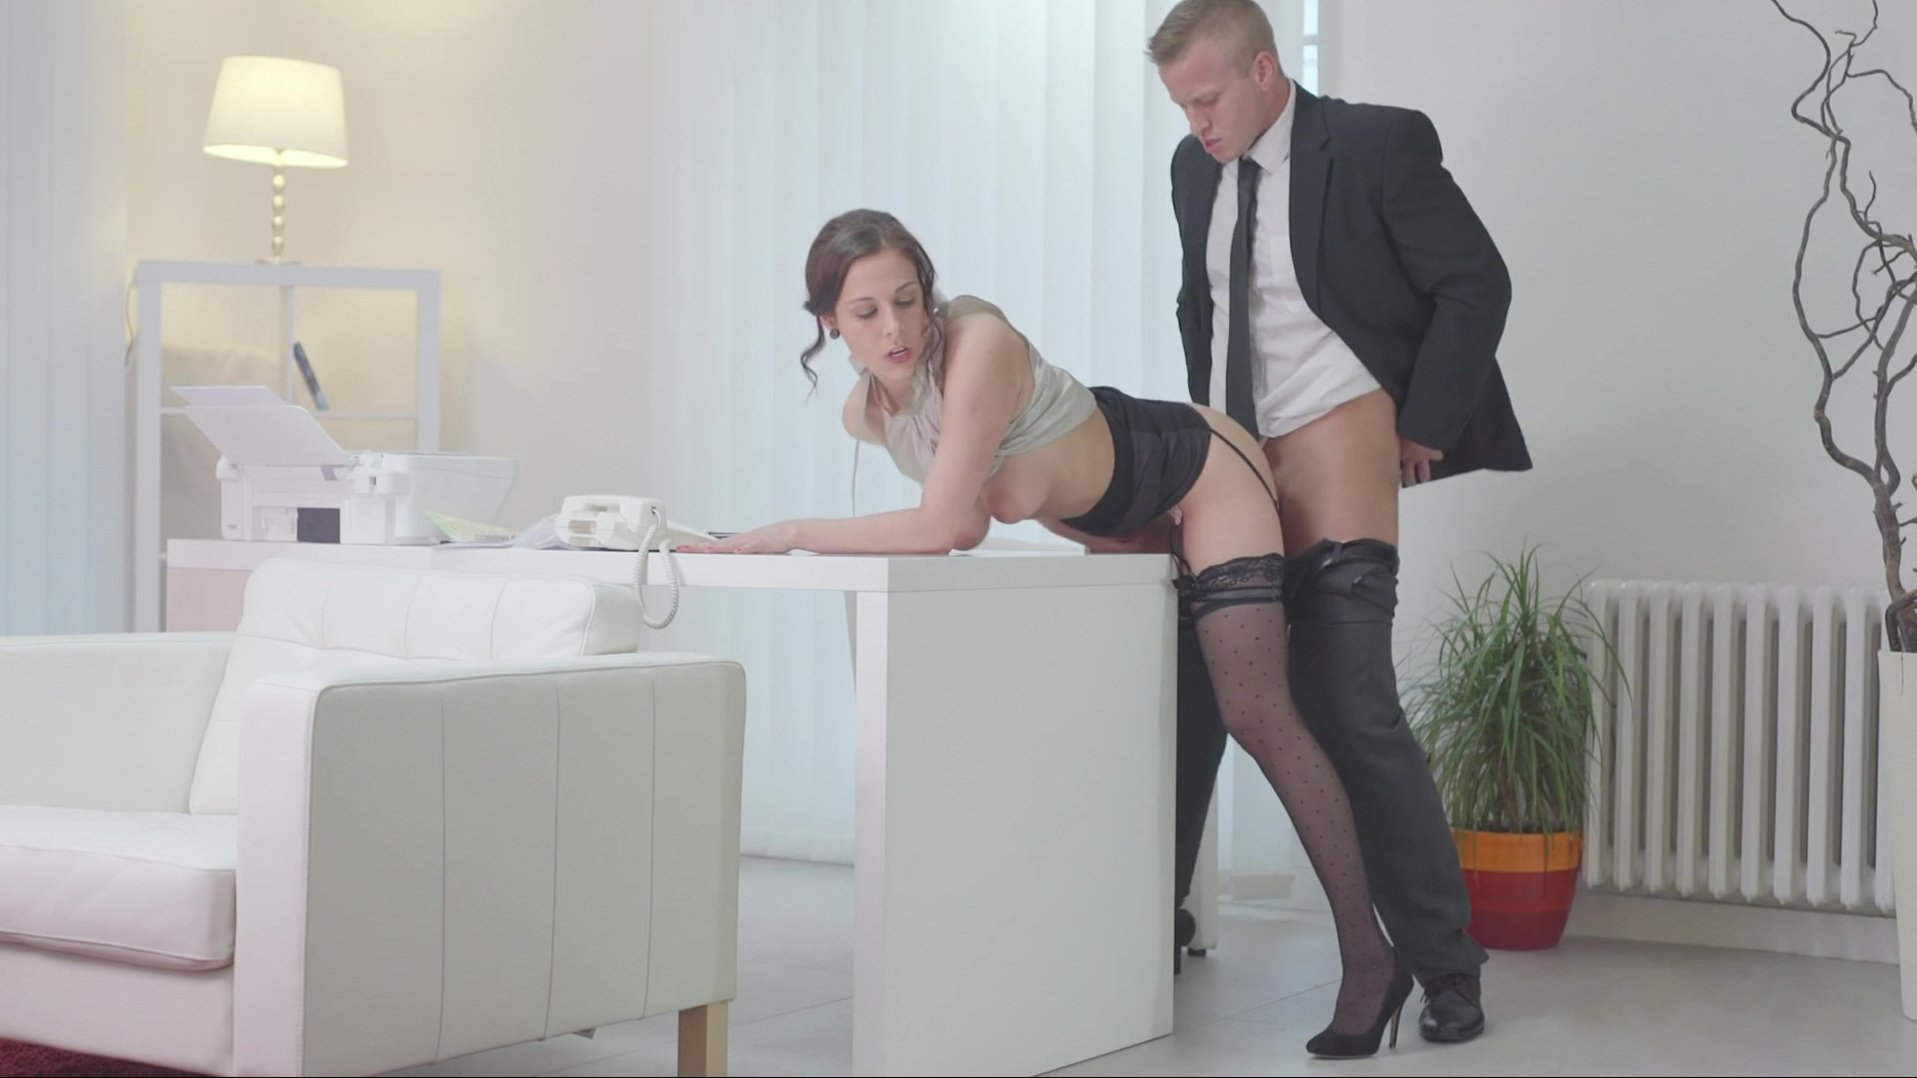 Sexy clothes lusty babe office scene